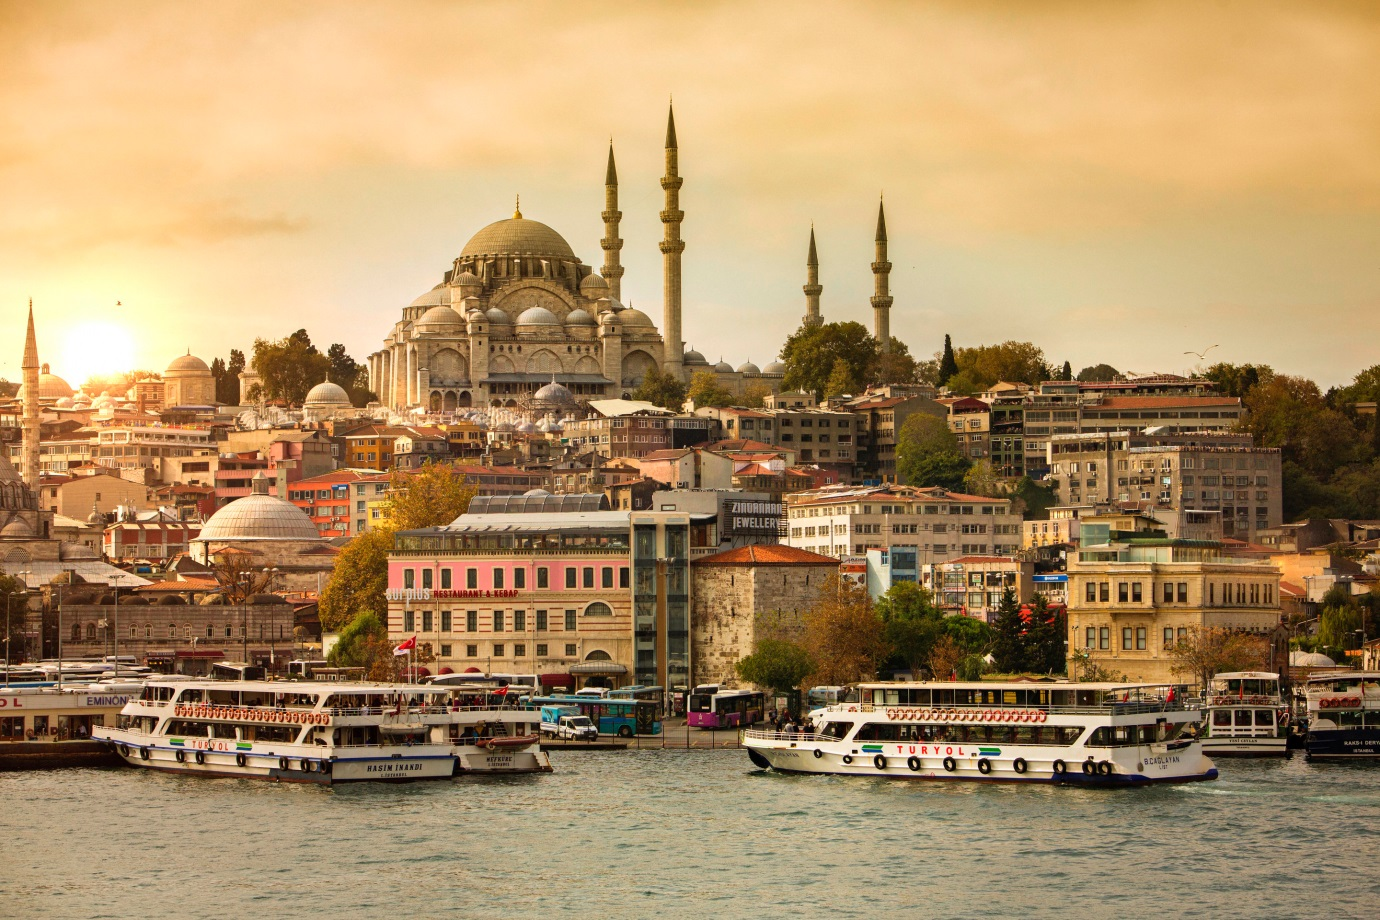 Istanbul sits on the divide between Europe and Asia, therefore is a transcontinental city